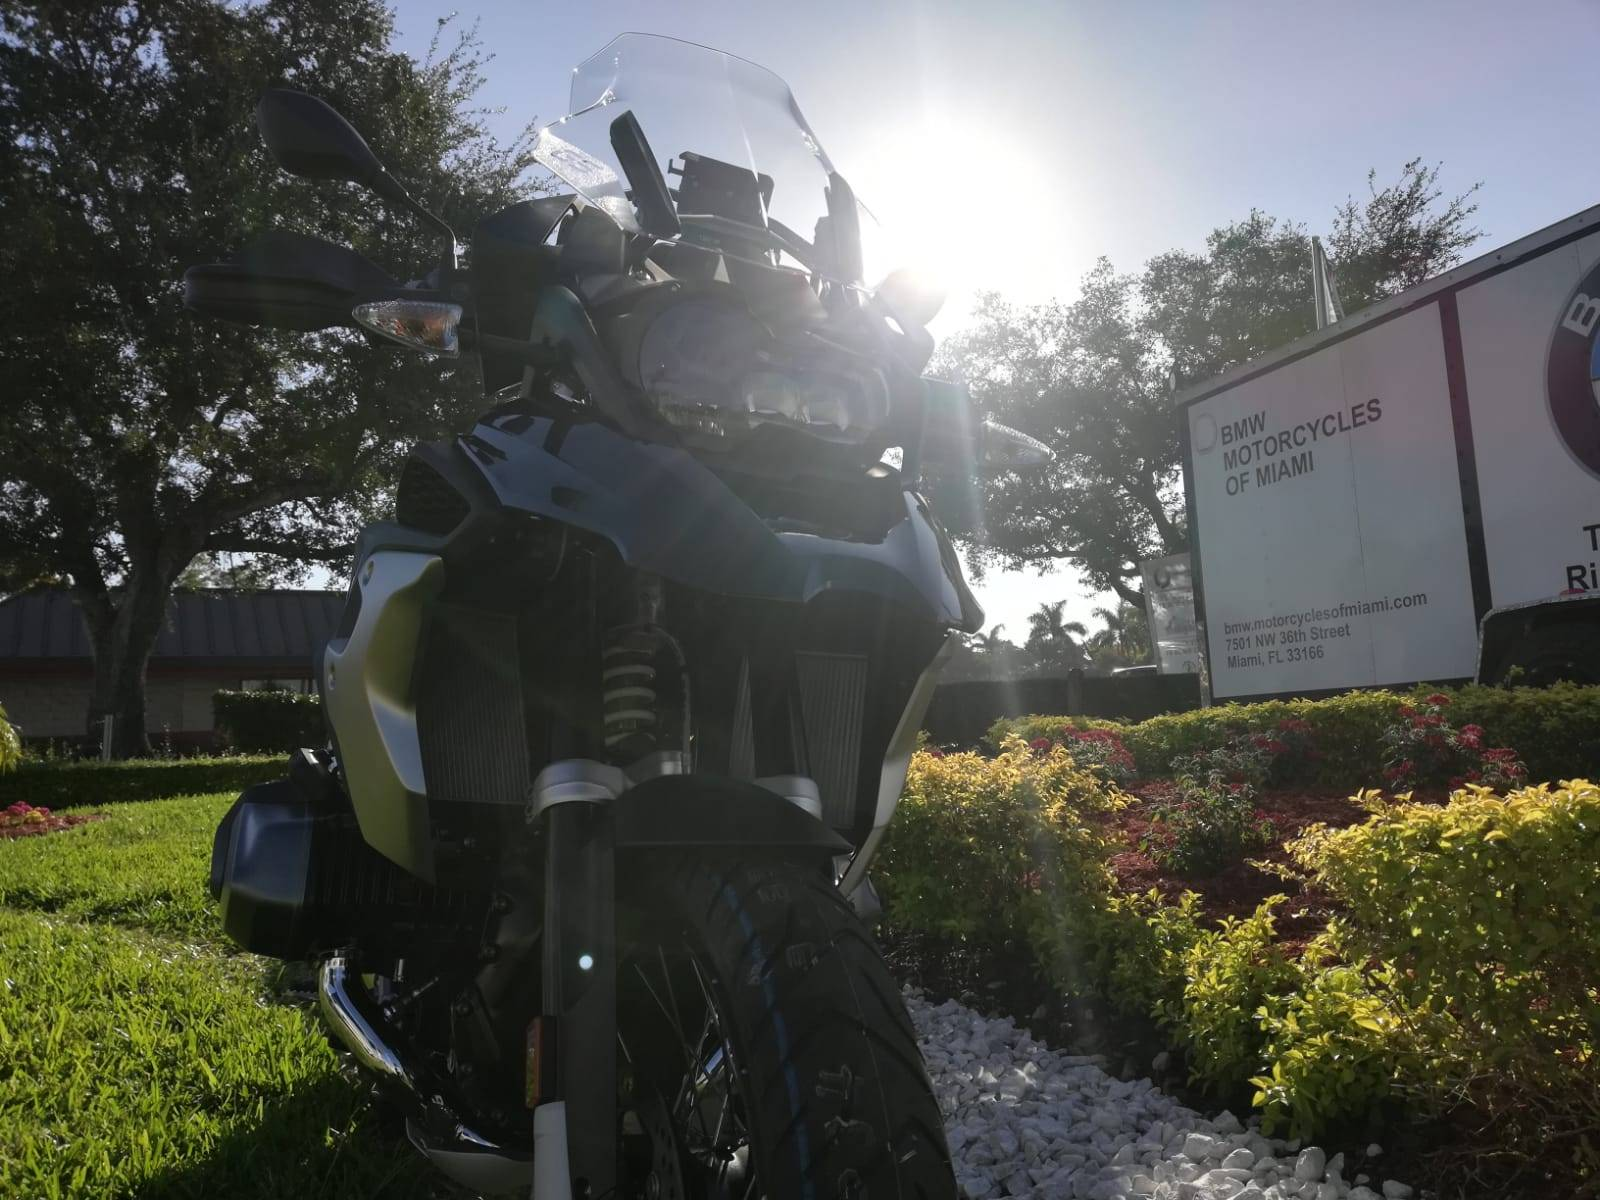 New 2019 BMW R 1250 GS for sale, BMW R 1250GS for sale, BMW Motorcycle GS, new BMW GS, Spirit of GS, BMW Motorcycles of Miami, Motorcycles of Miami, Motorcycles Miami, New Motorcycles, Used Motorcycles, pre-owned. #BMWMotorcyclesOfMiami #MotorcyclesOfMiami. - Photo 32